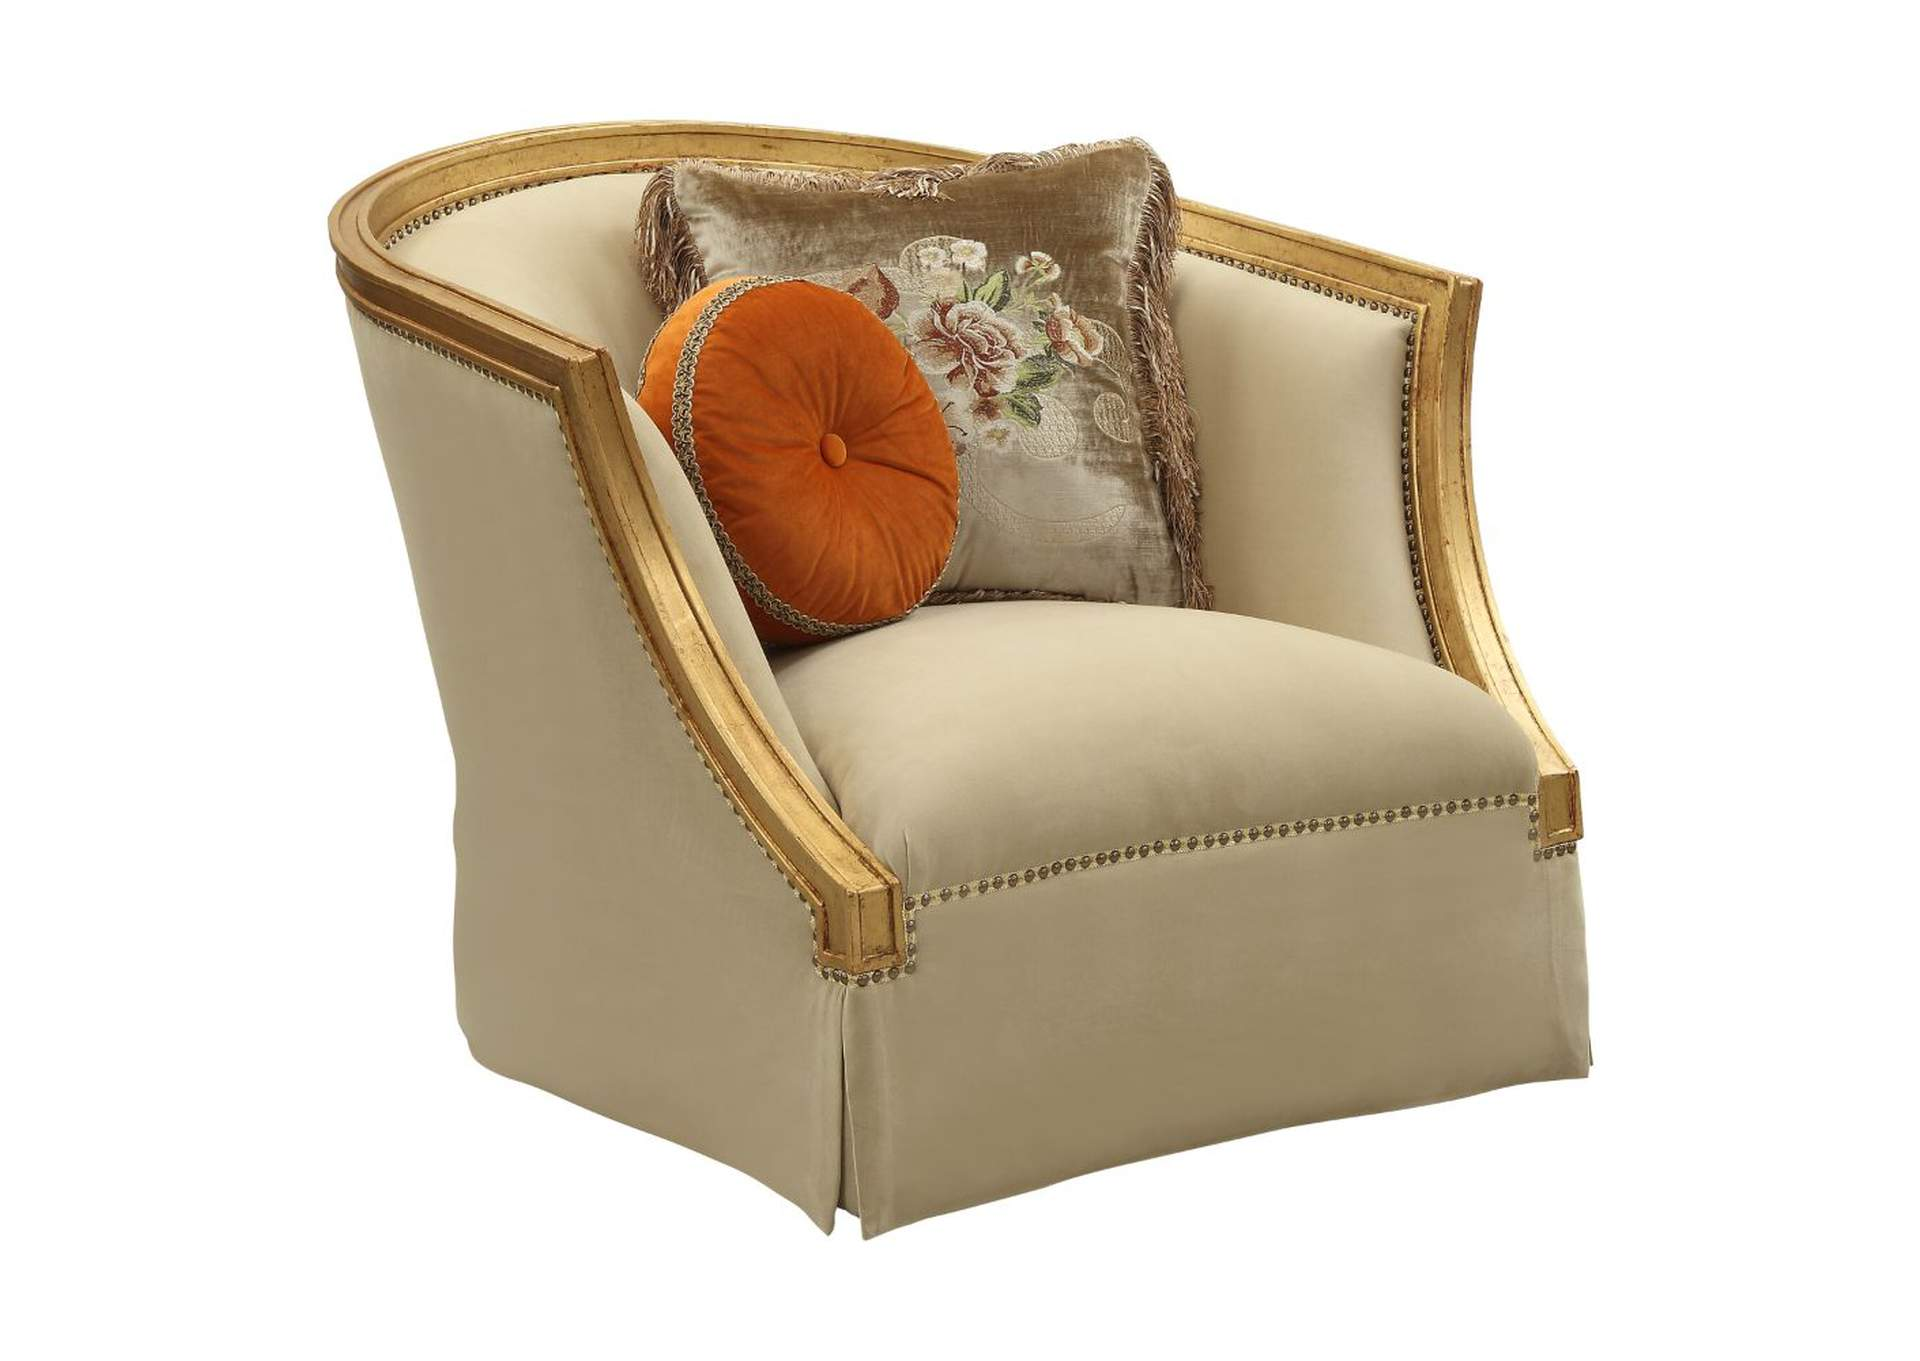 Daesha Tan Flannel & Antique Gold Chair,Acme